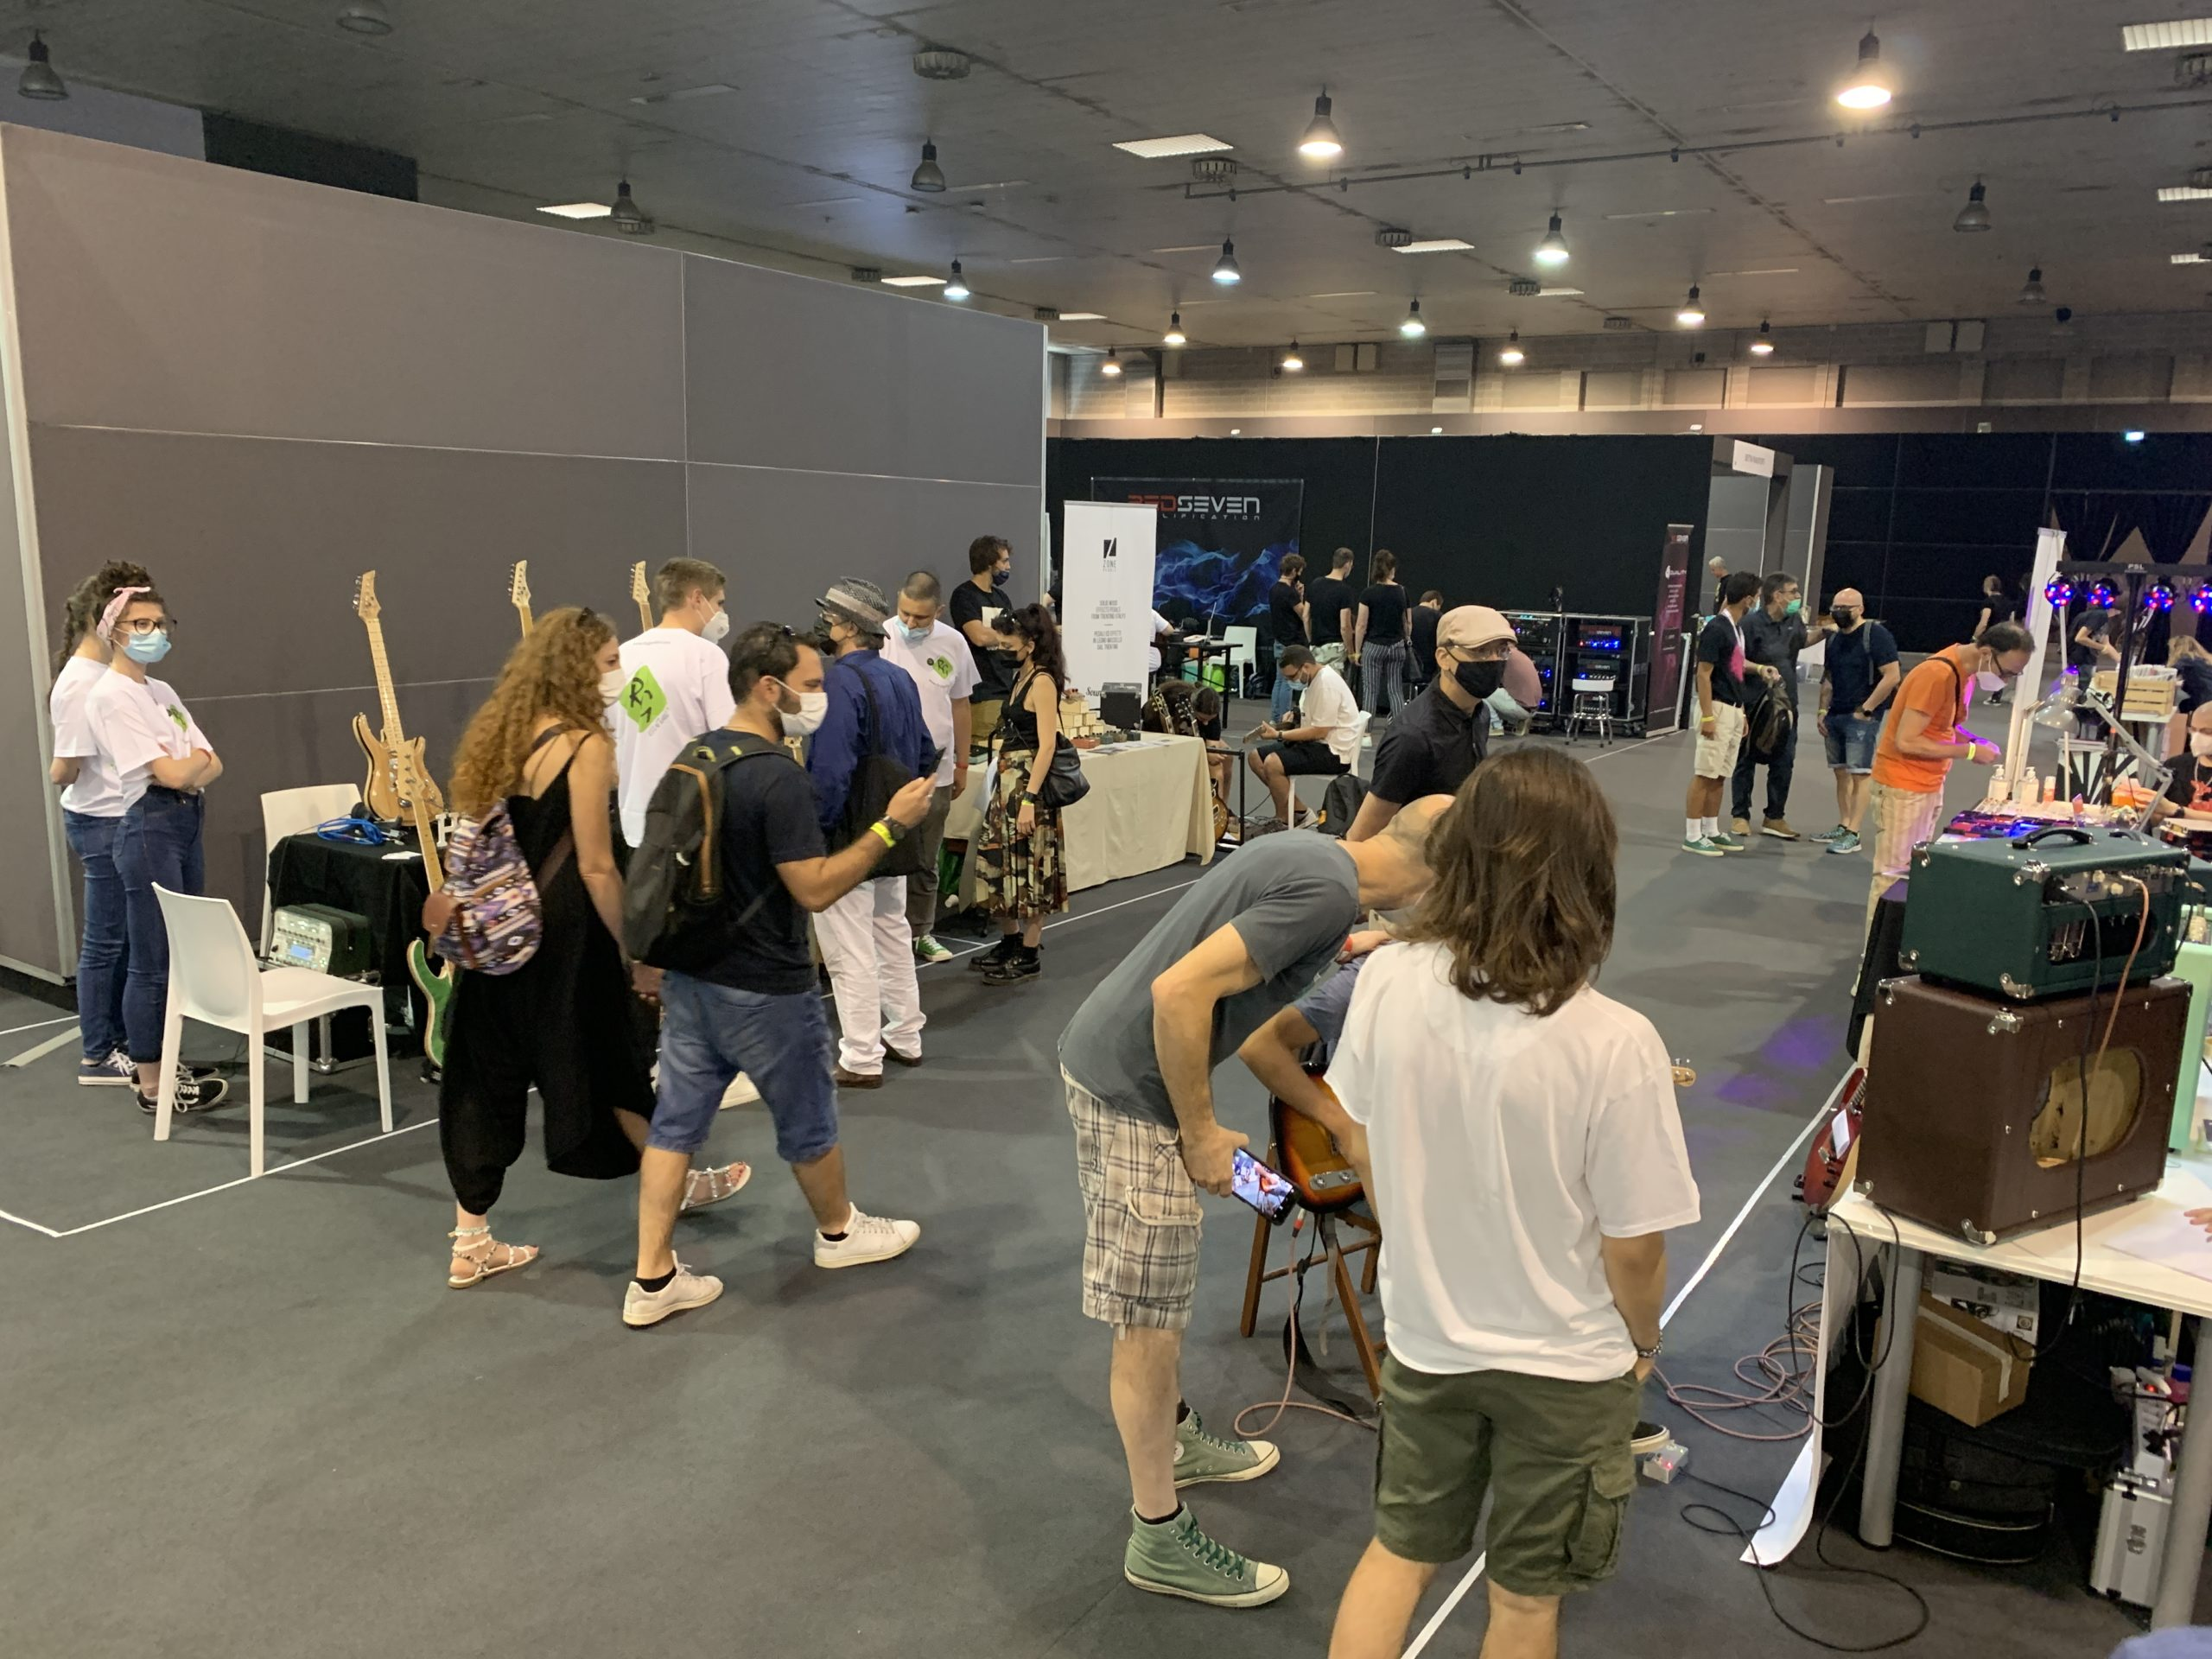 Guitar Show Italy, full report of the 2nd day